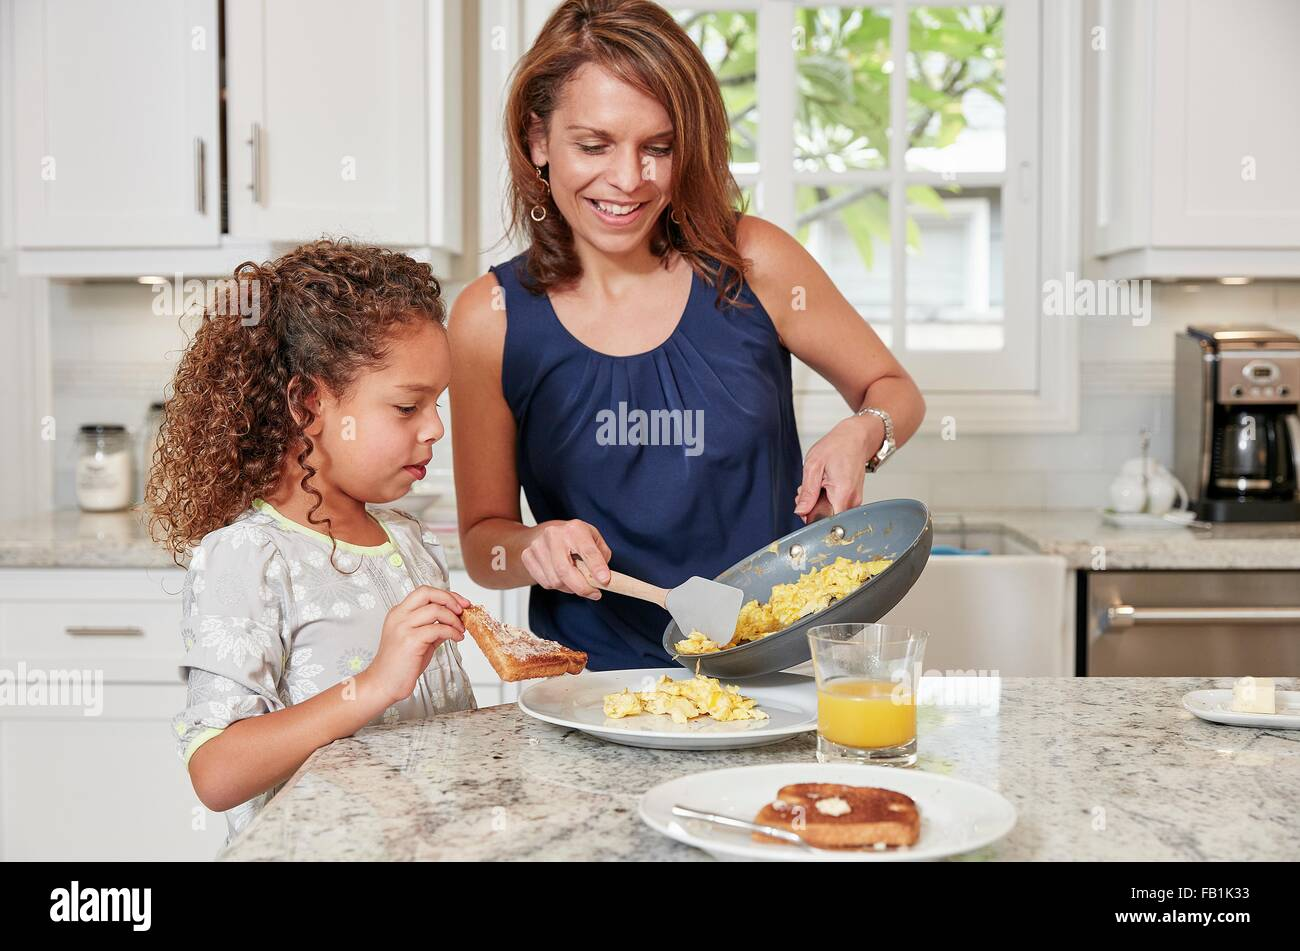 Mother at kitchen counter serving daughter scrambled eggs from frying pan - Stock Image